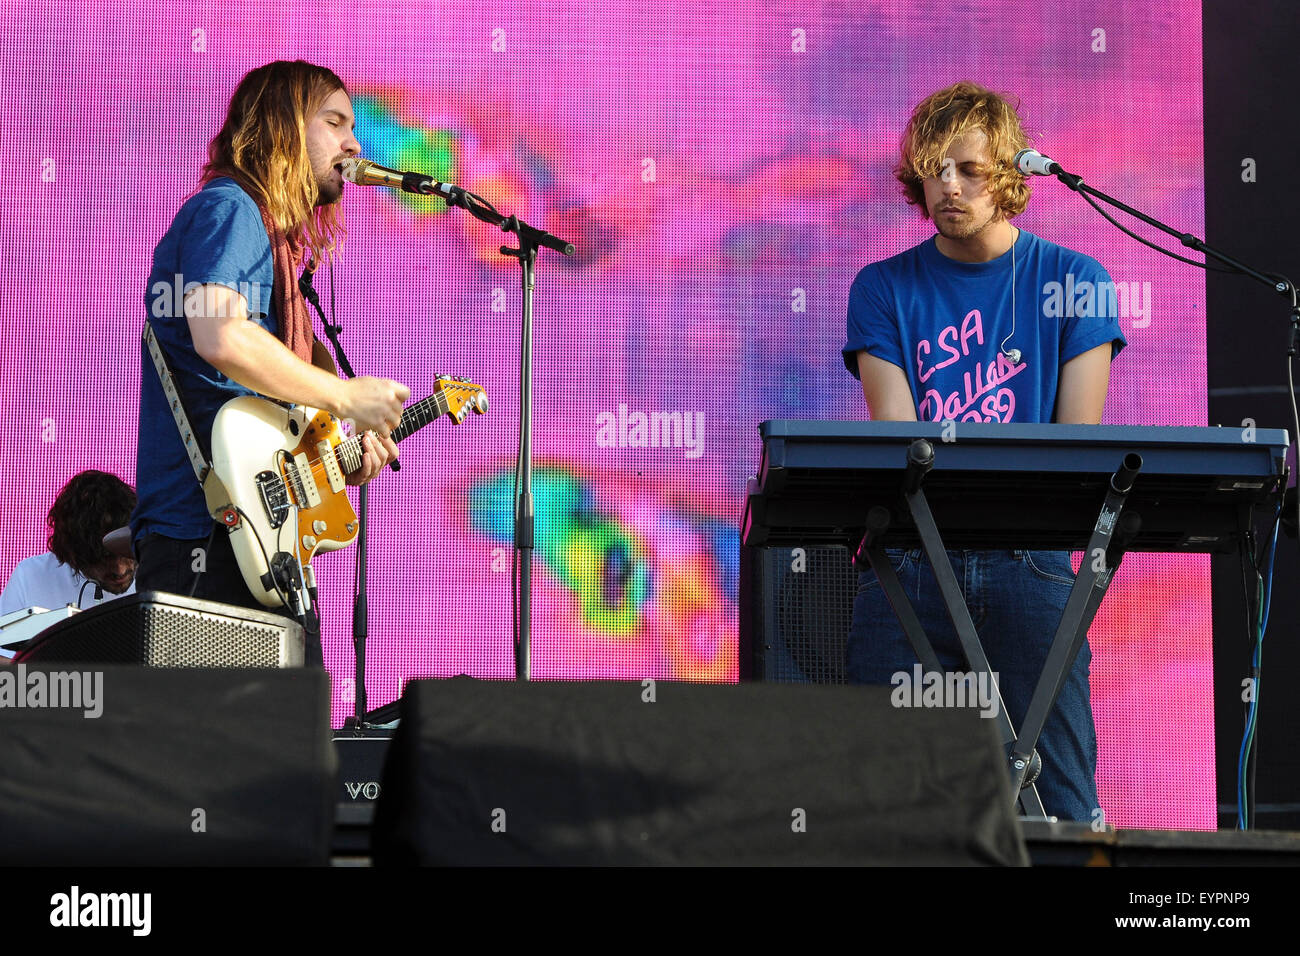 Grant Park. 01st Aug, 2015. August 01, 2015. - Tame Impala performing live during the Lollapalooza Festival 2015 - Stock Image